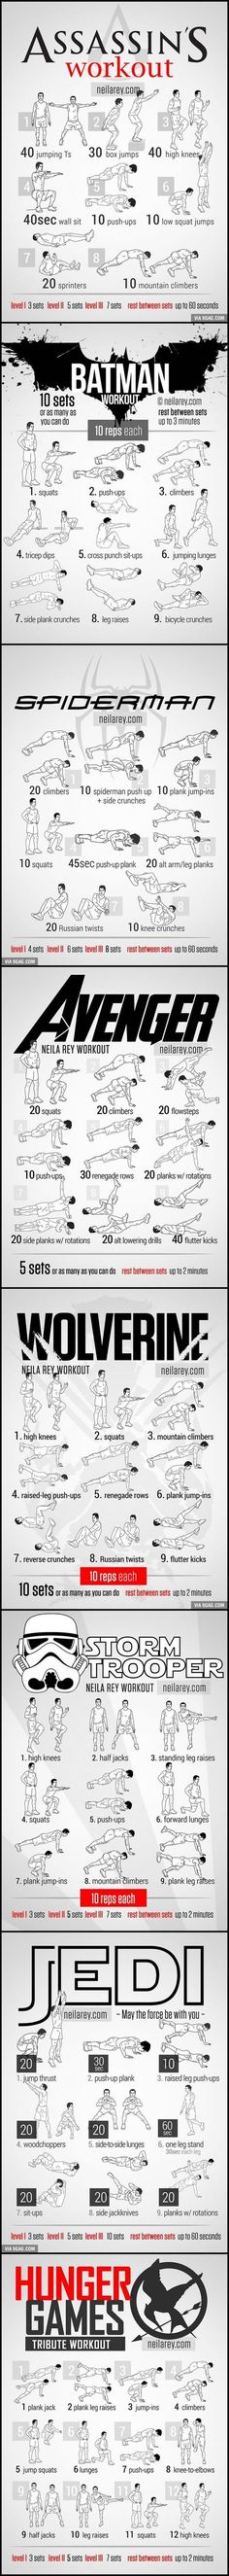 9GAG - Workout for Assassin, Batman, Spiderman, Avenger, Wolverine, Stormtrooper, Jedi and Hunger Games!